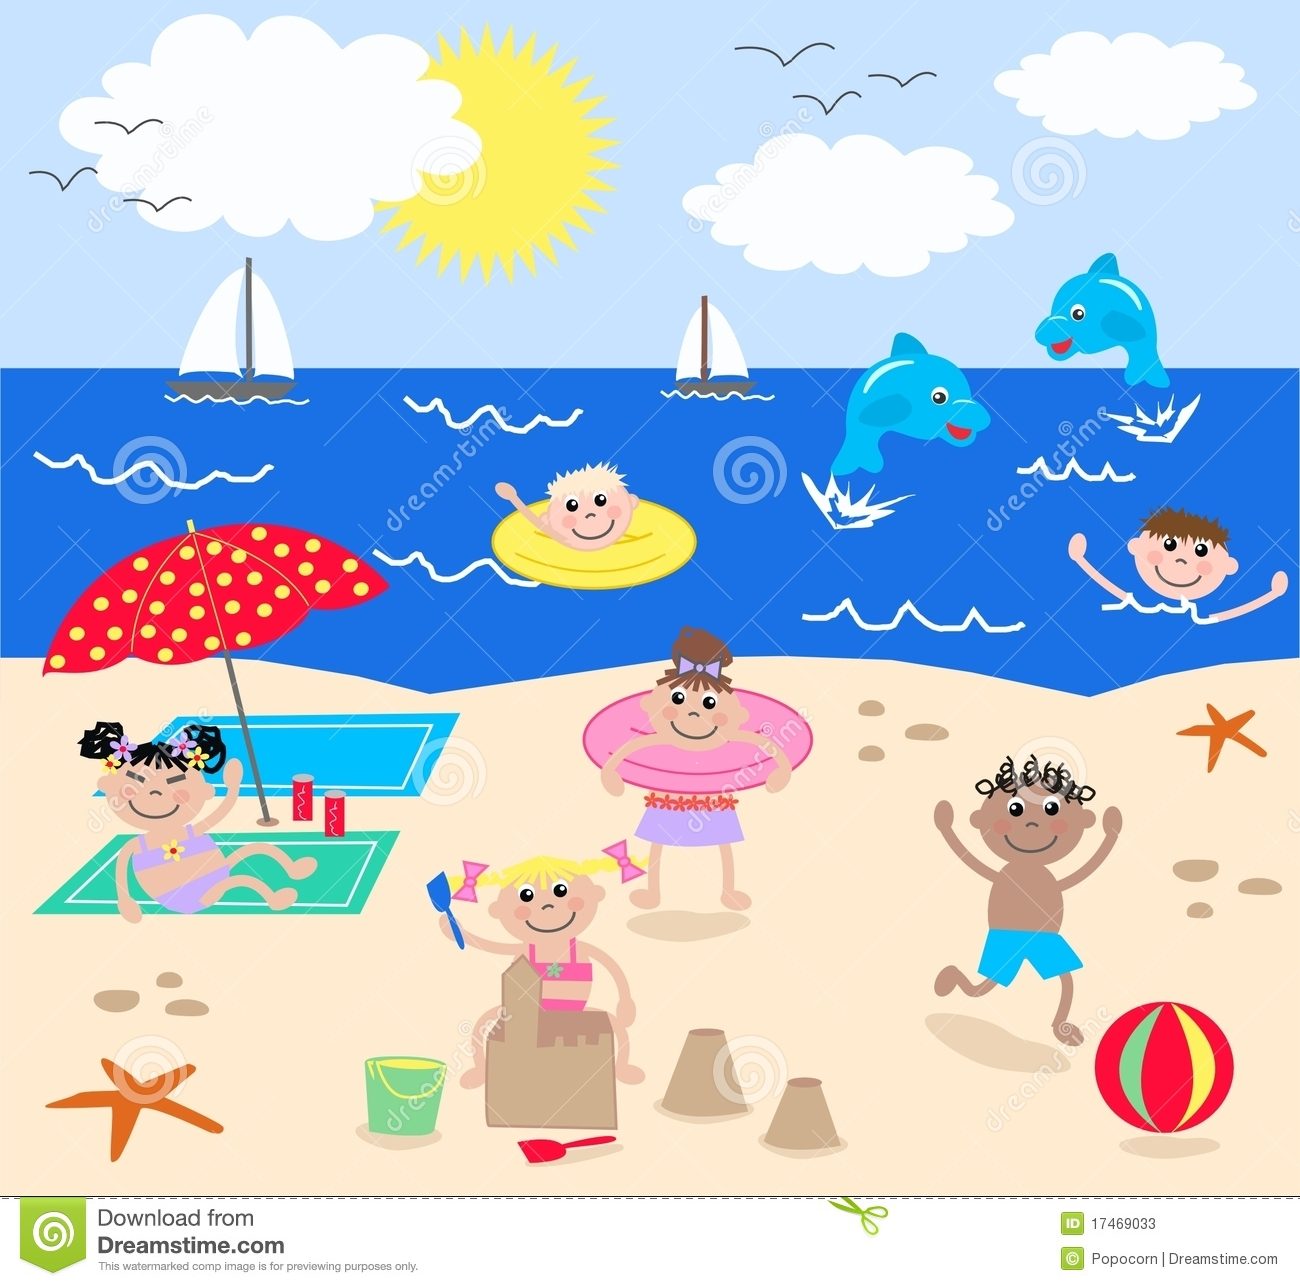 The beach of clipart - Clipground